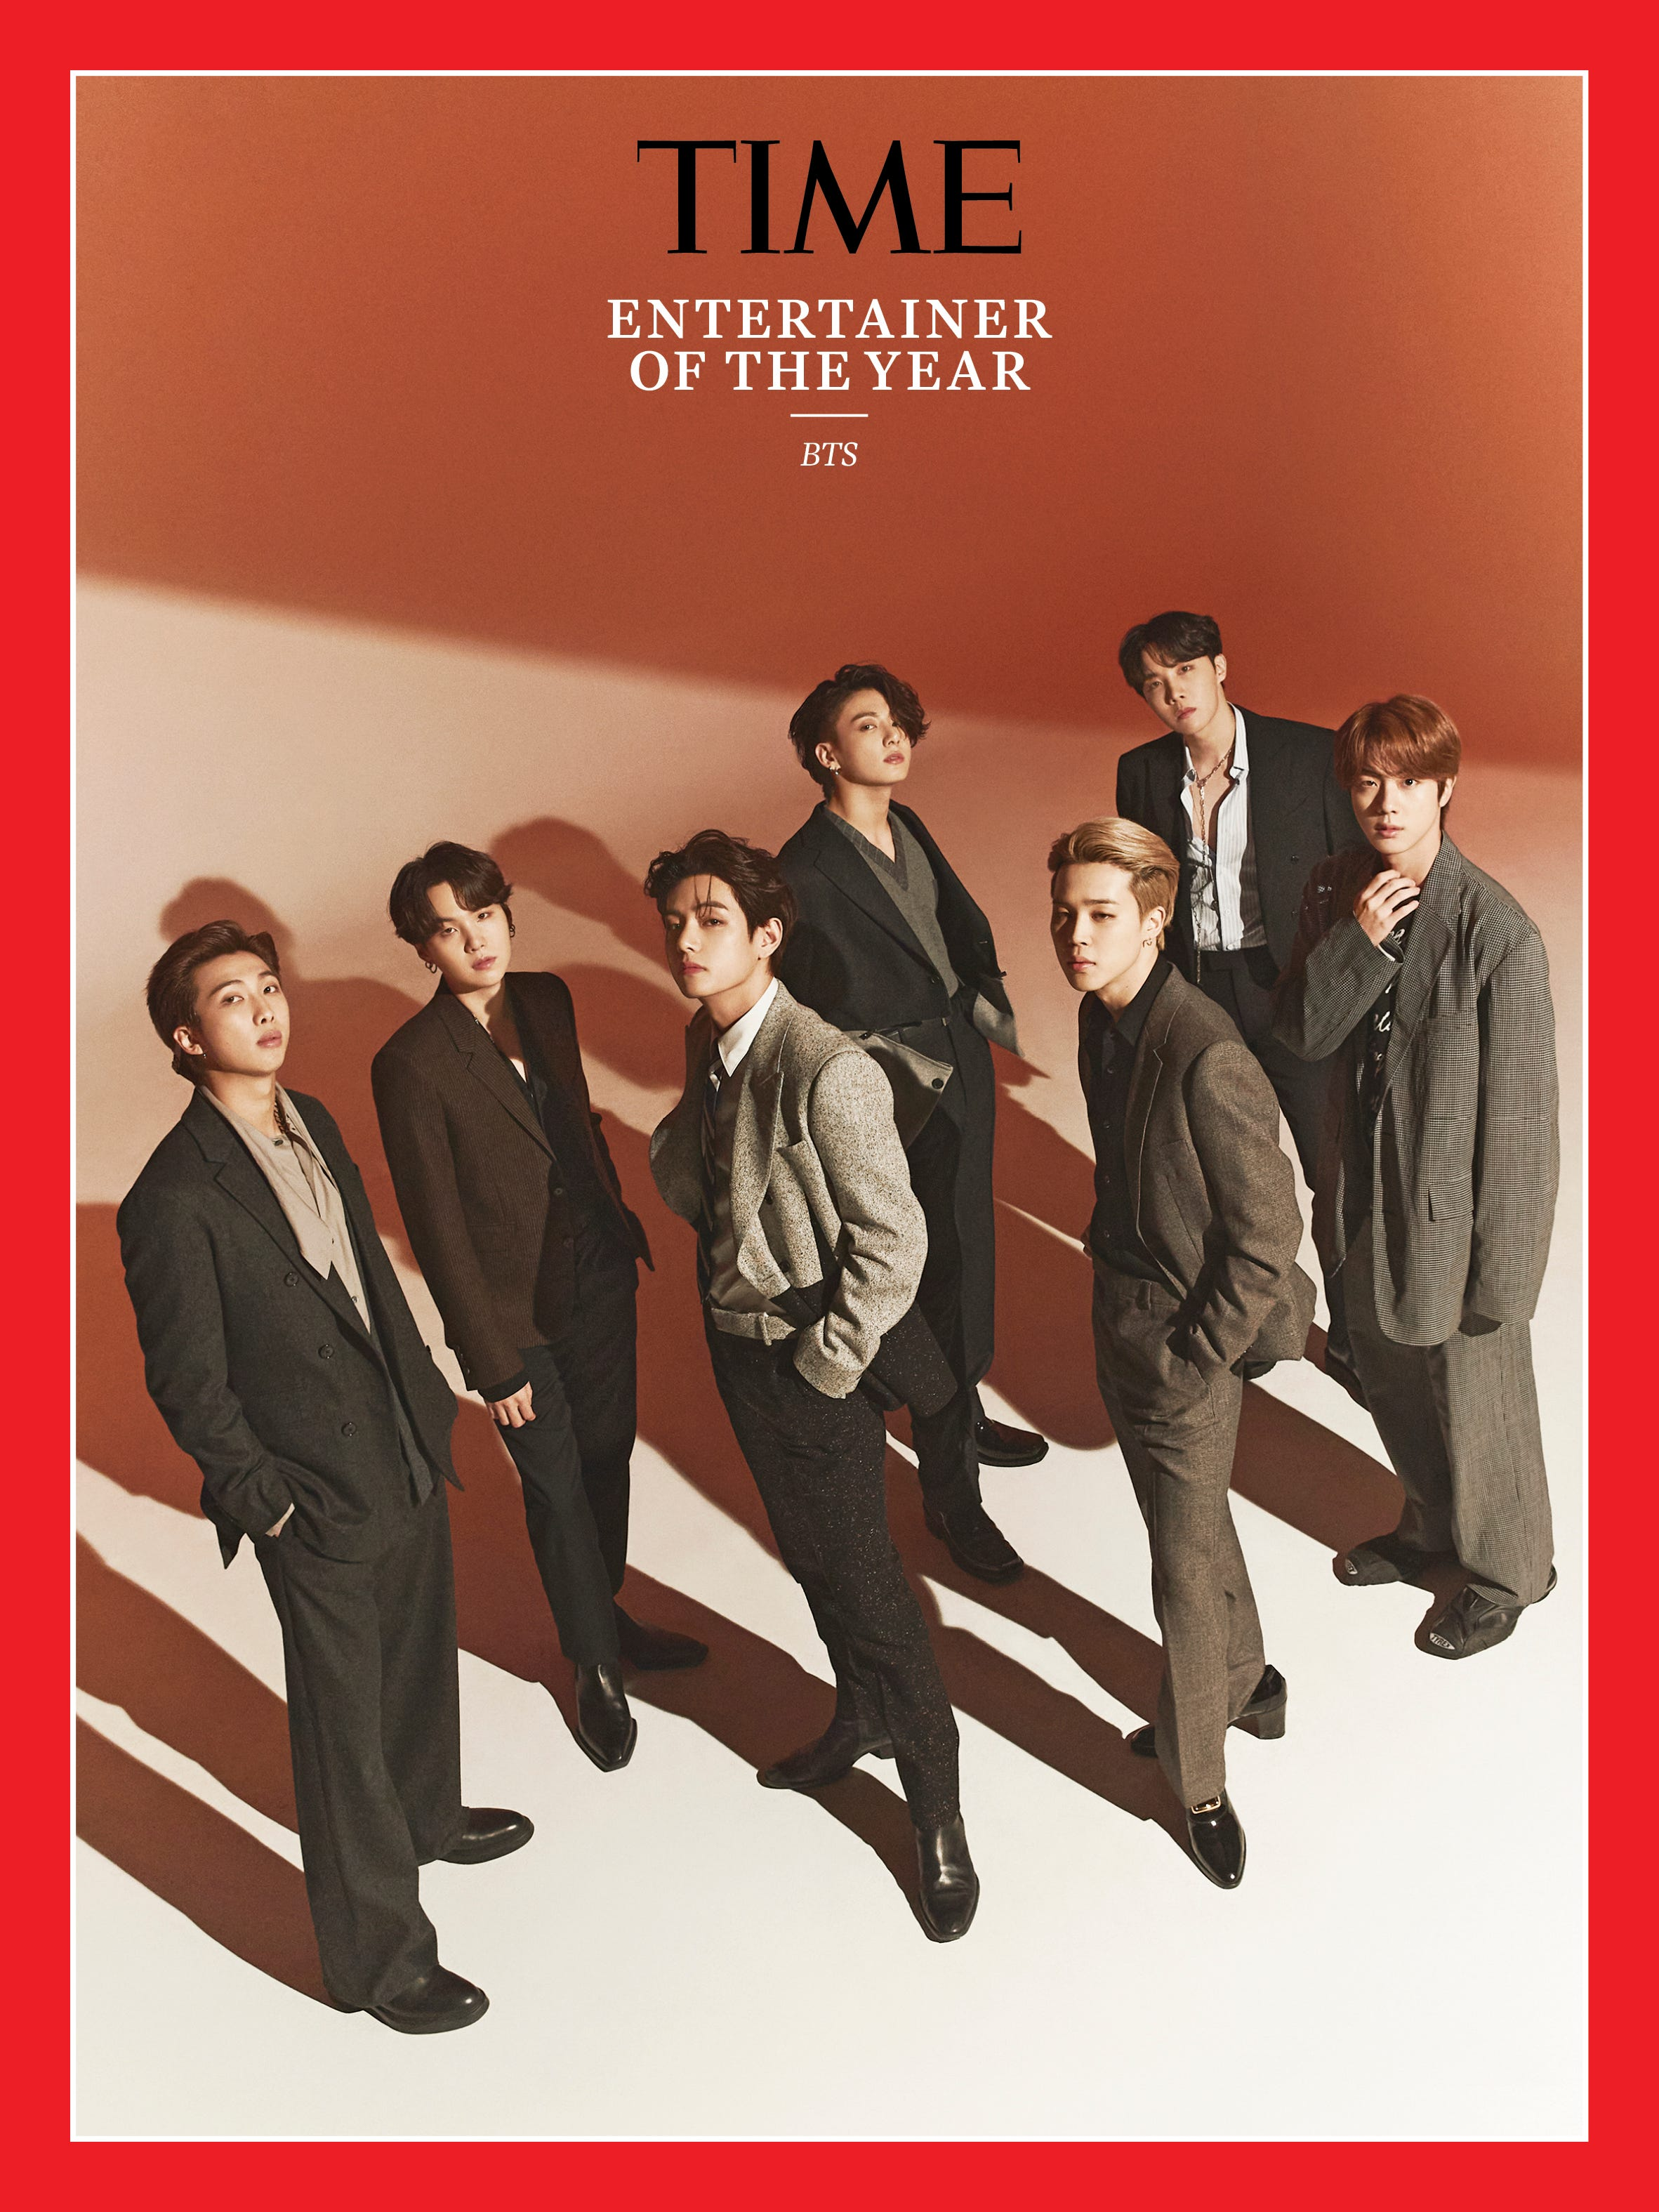 BTS: Time names K-pop group 2020 Entertainer of the Year